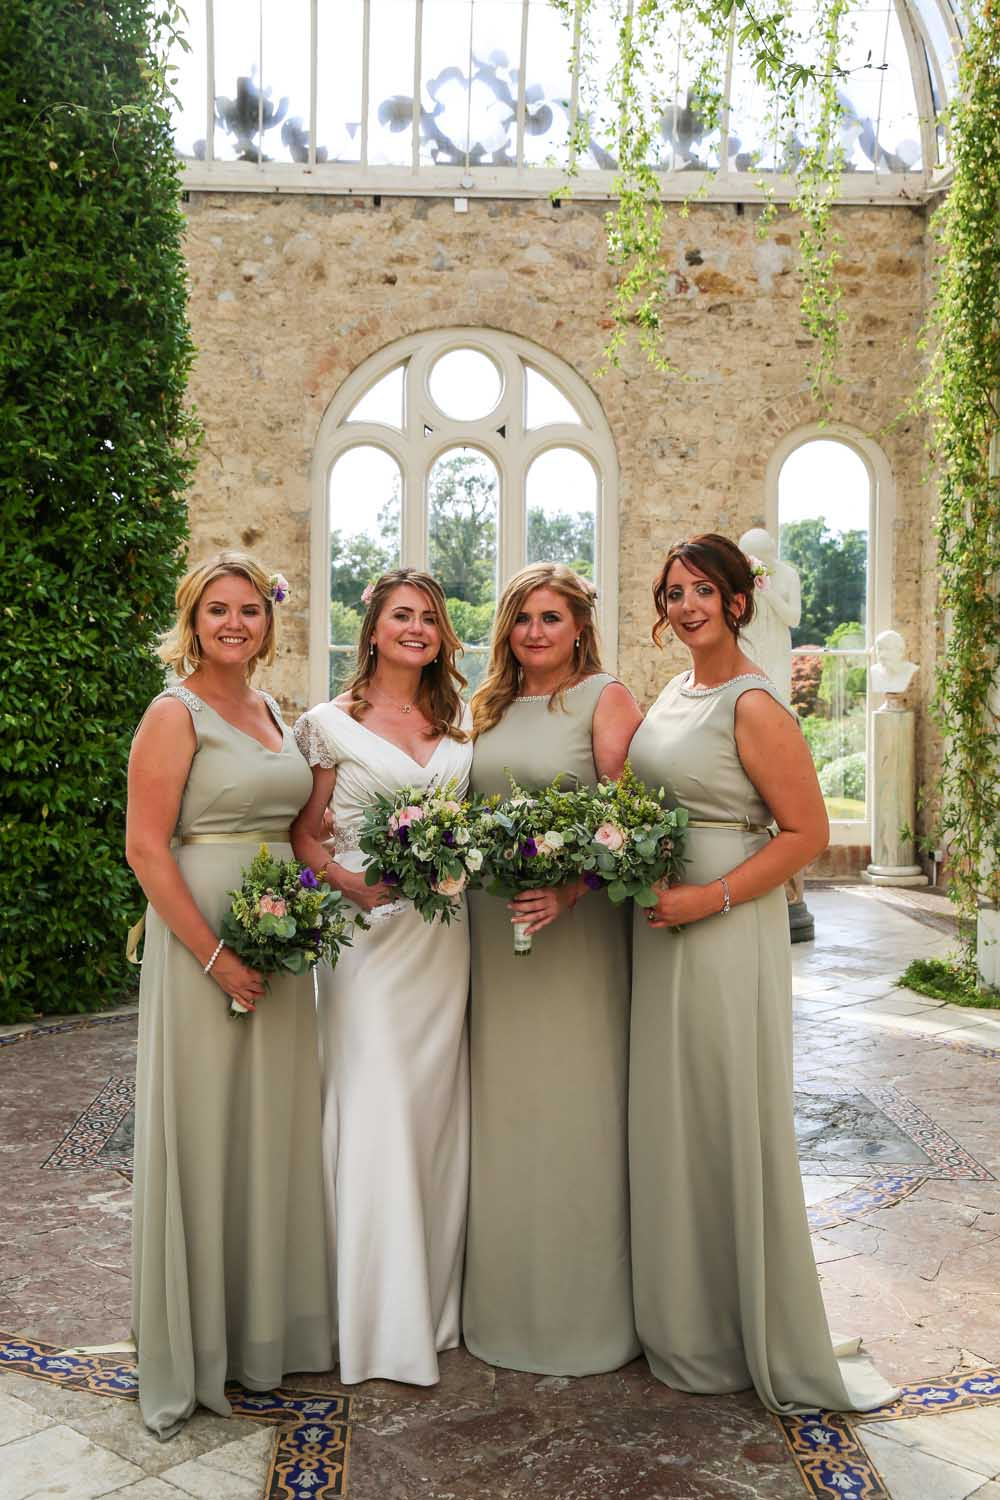 Bridesmaids photographed at Killruddery House, Co. Wicklow